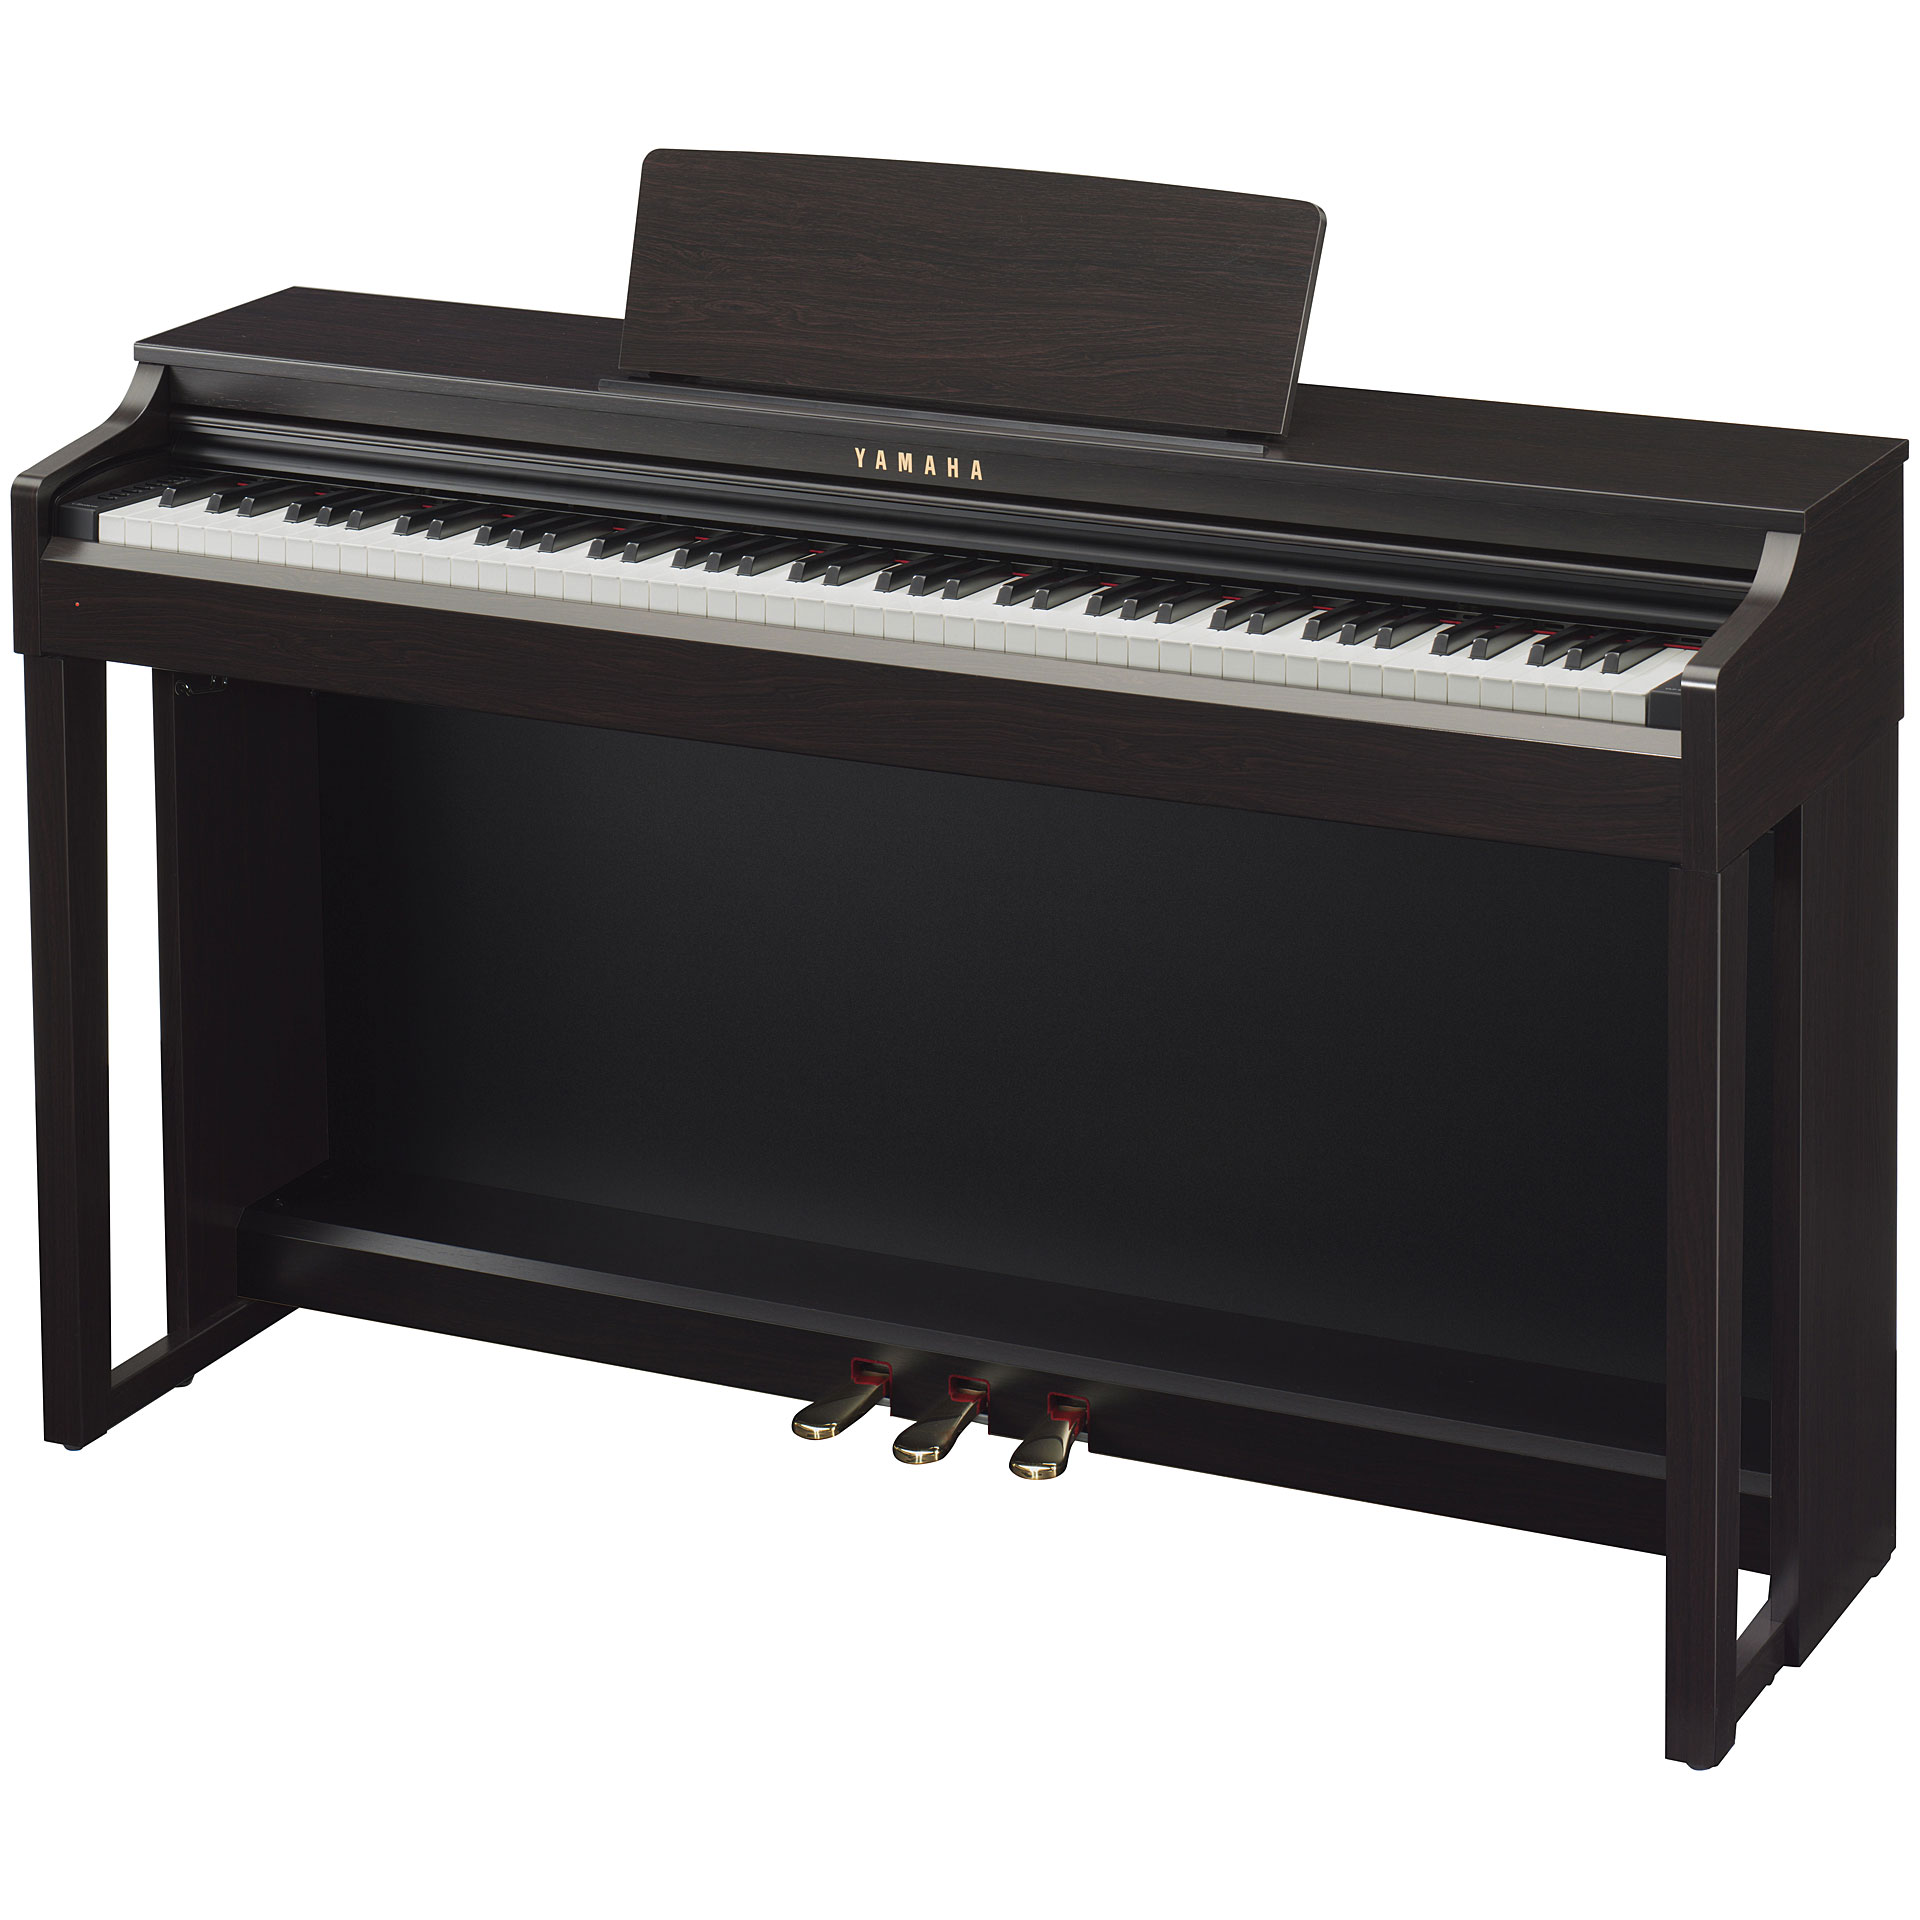 yamaha clavinova clp 525r digital piano. Black Bedroom Furniture Sets. Home Design Ideas